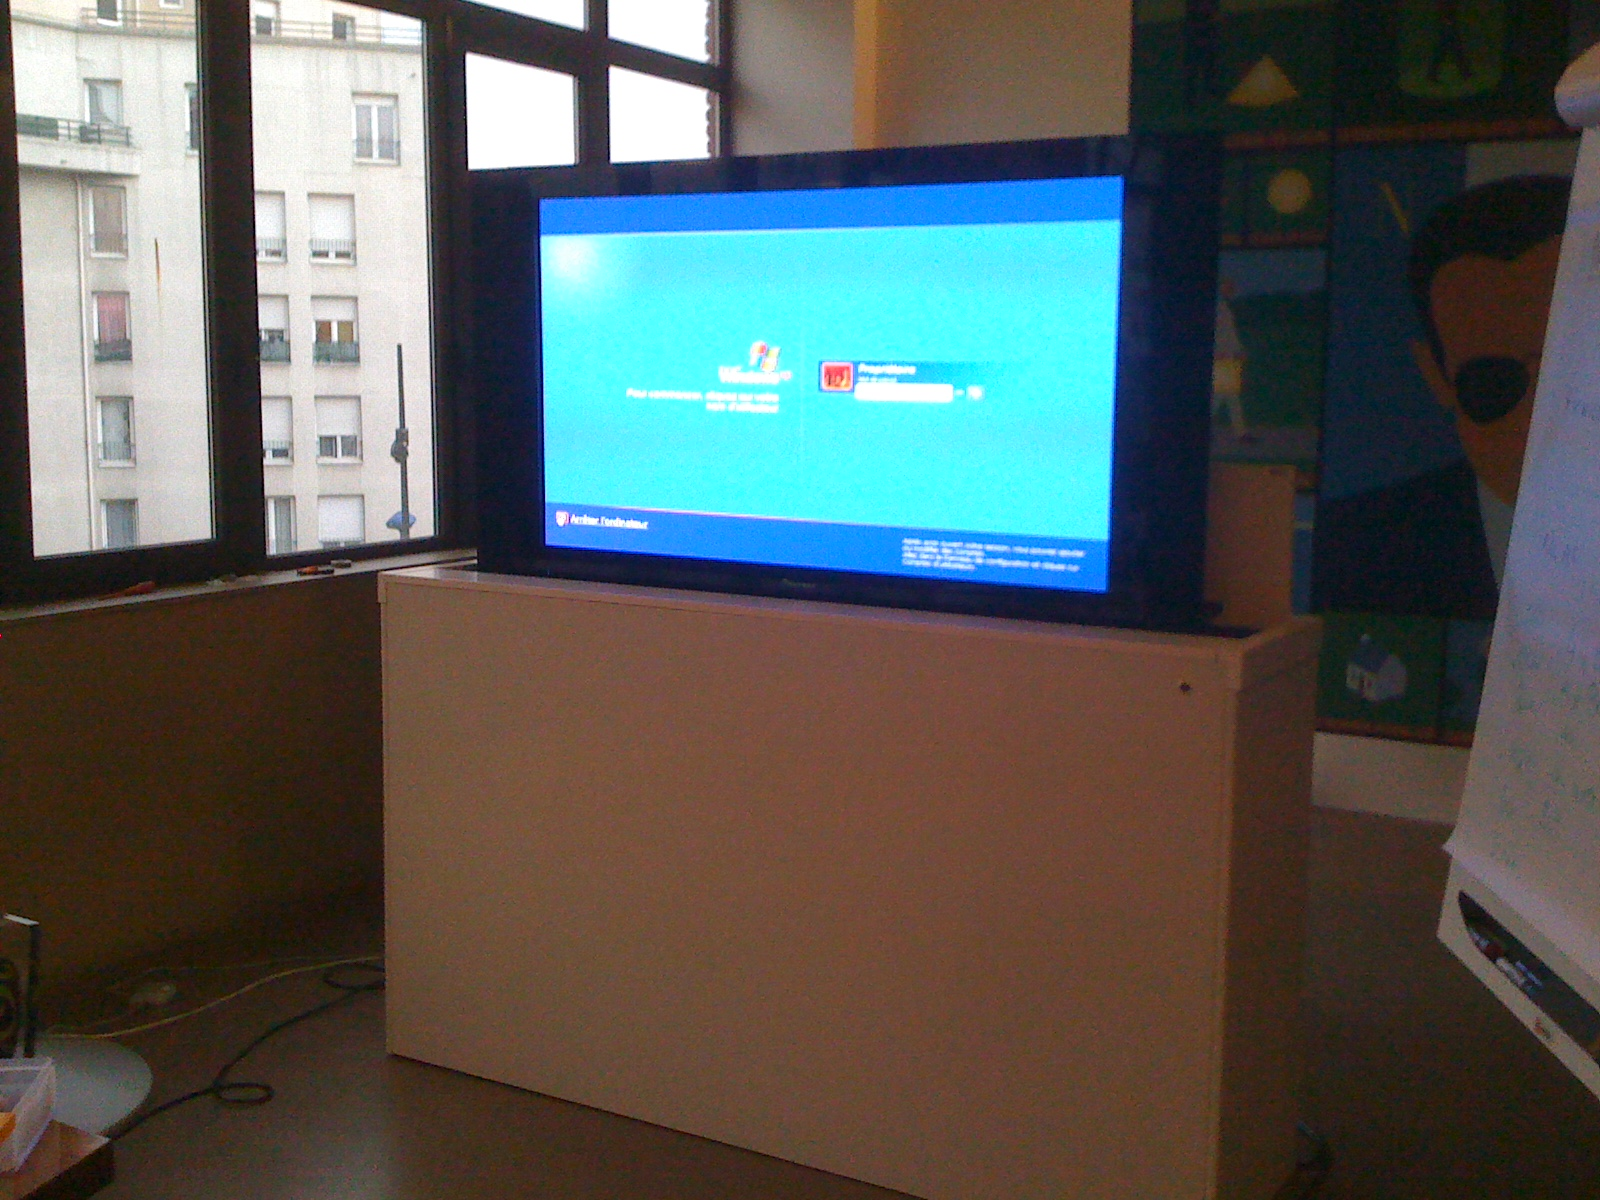 Meuble Tv Ascenseur - Meuble Tv Elevateur Artzein Com[mjhdah]http://www.pilotefilms.com/uploads/product/futureautomation/lsl-efa/images/14291/original/lsl-efa-2.jpg